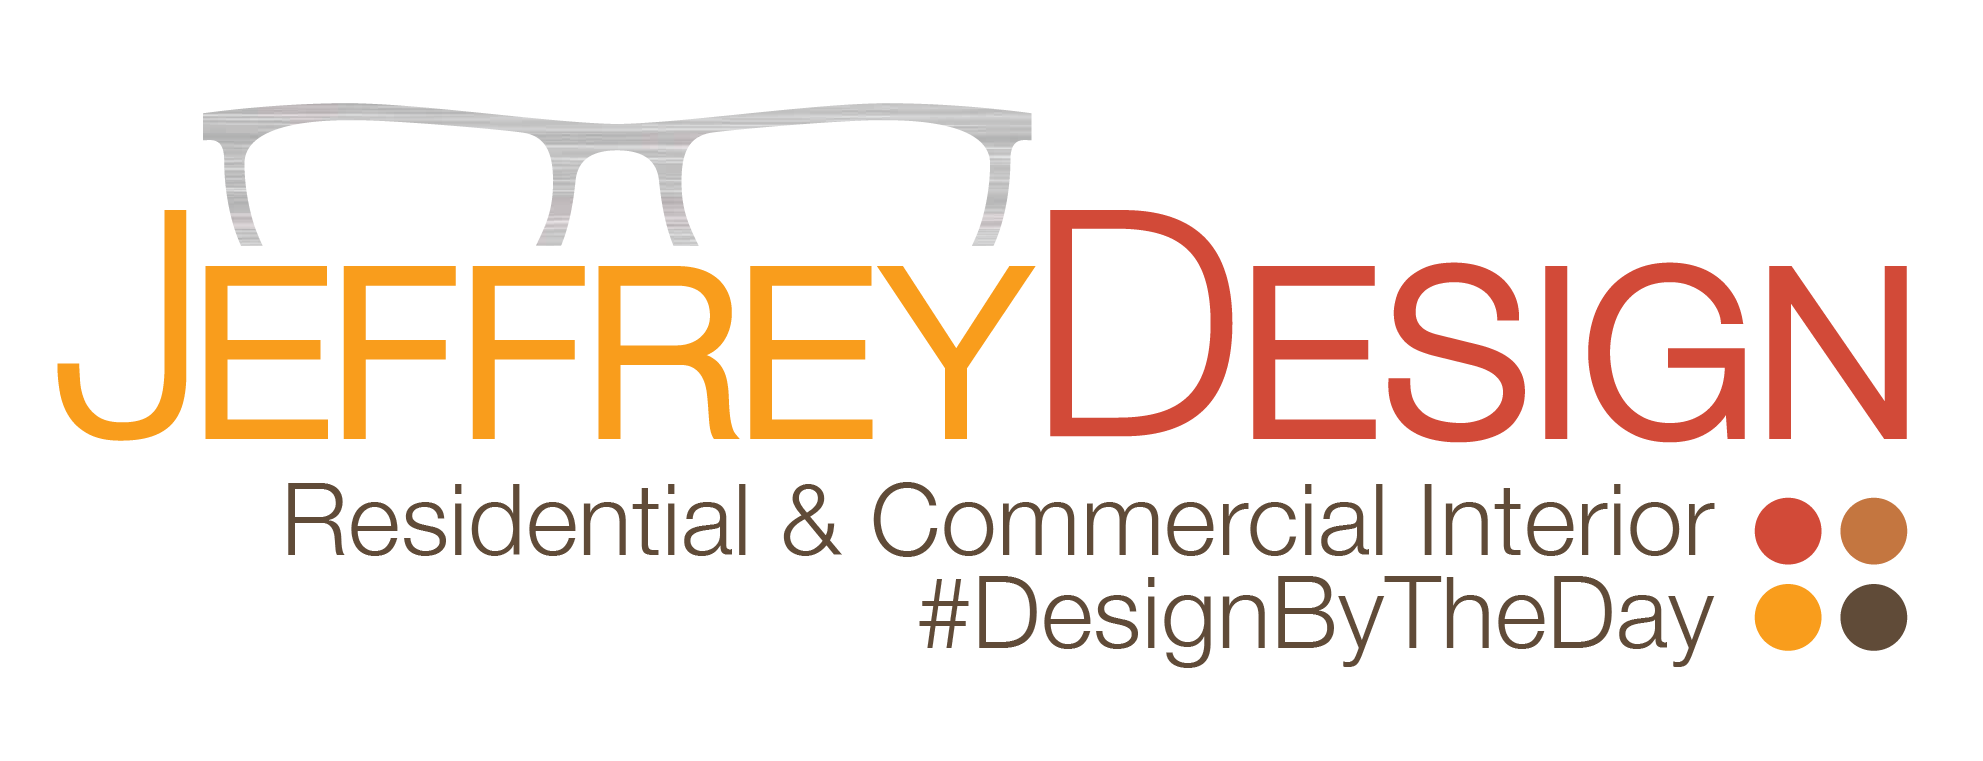 Jeffrey Design Logo - #designbytheday - XL